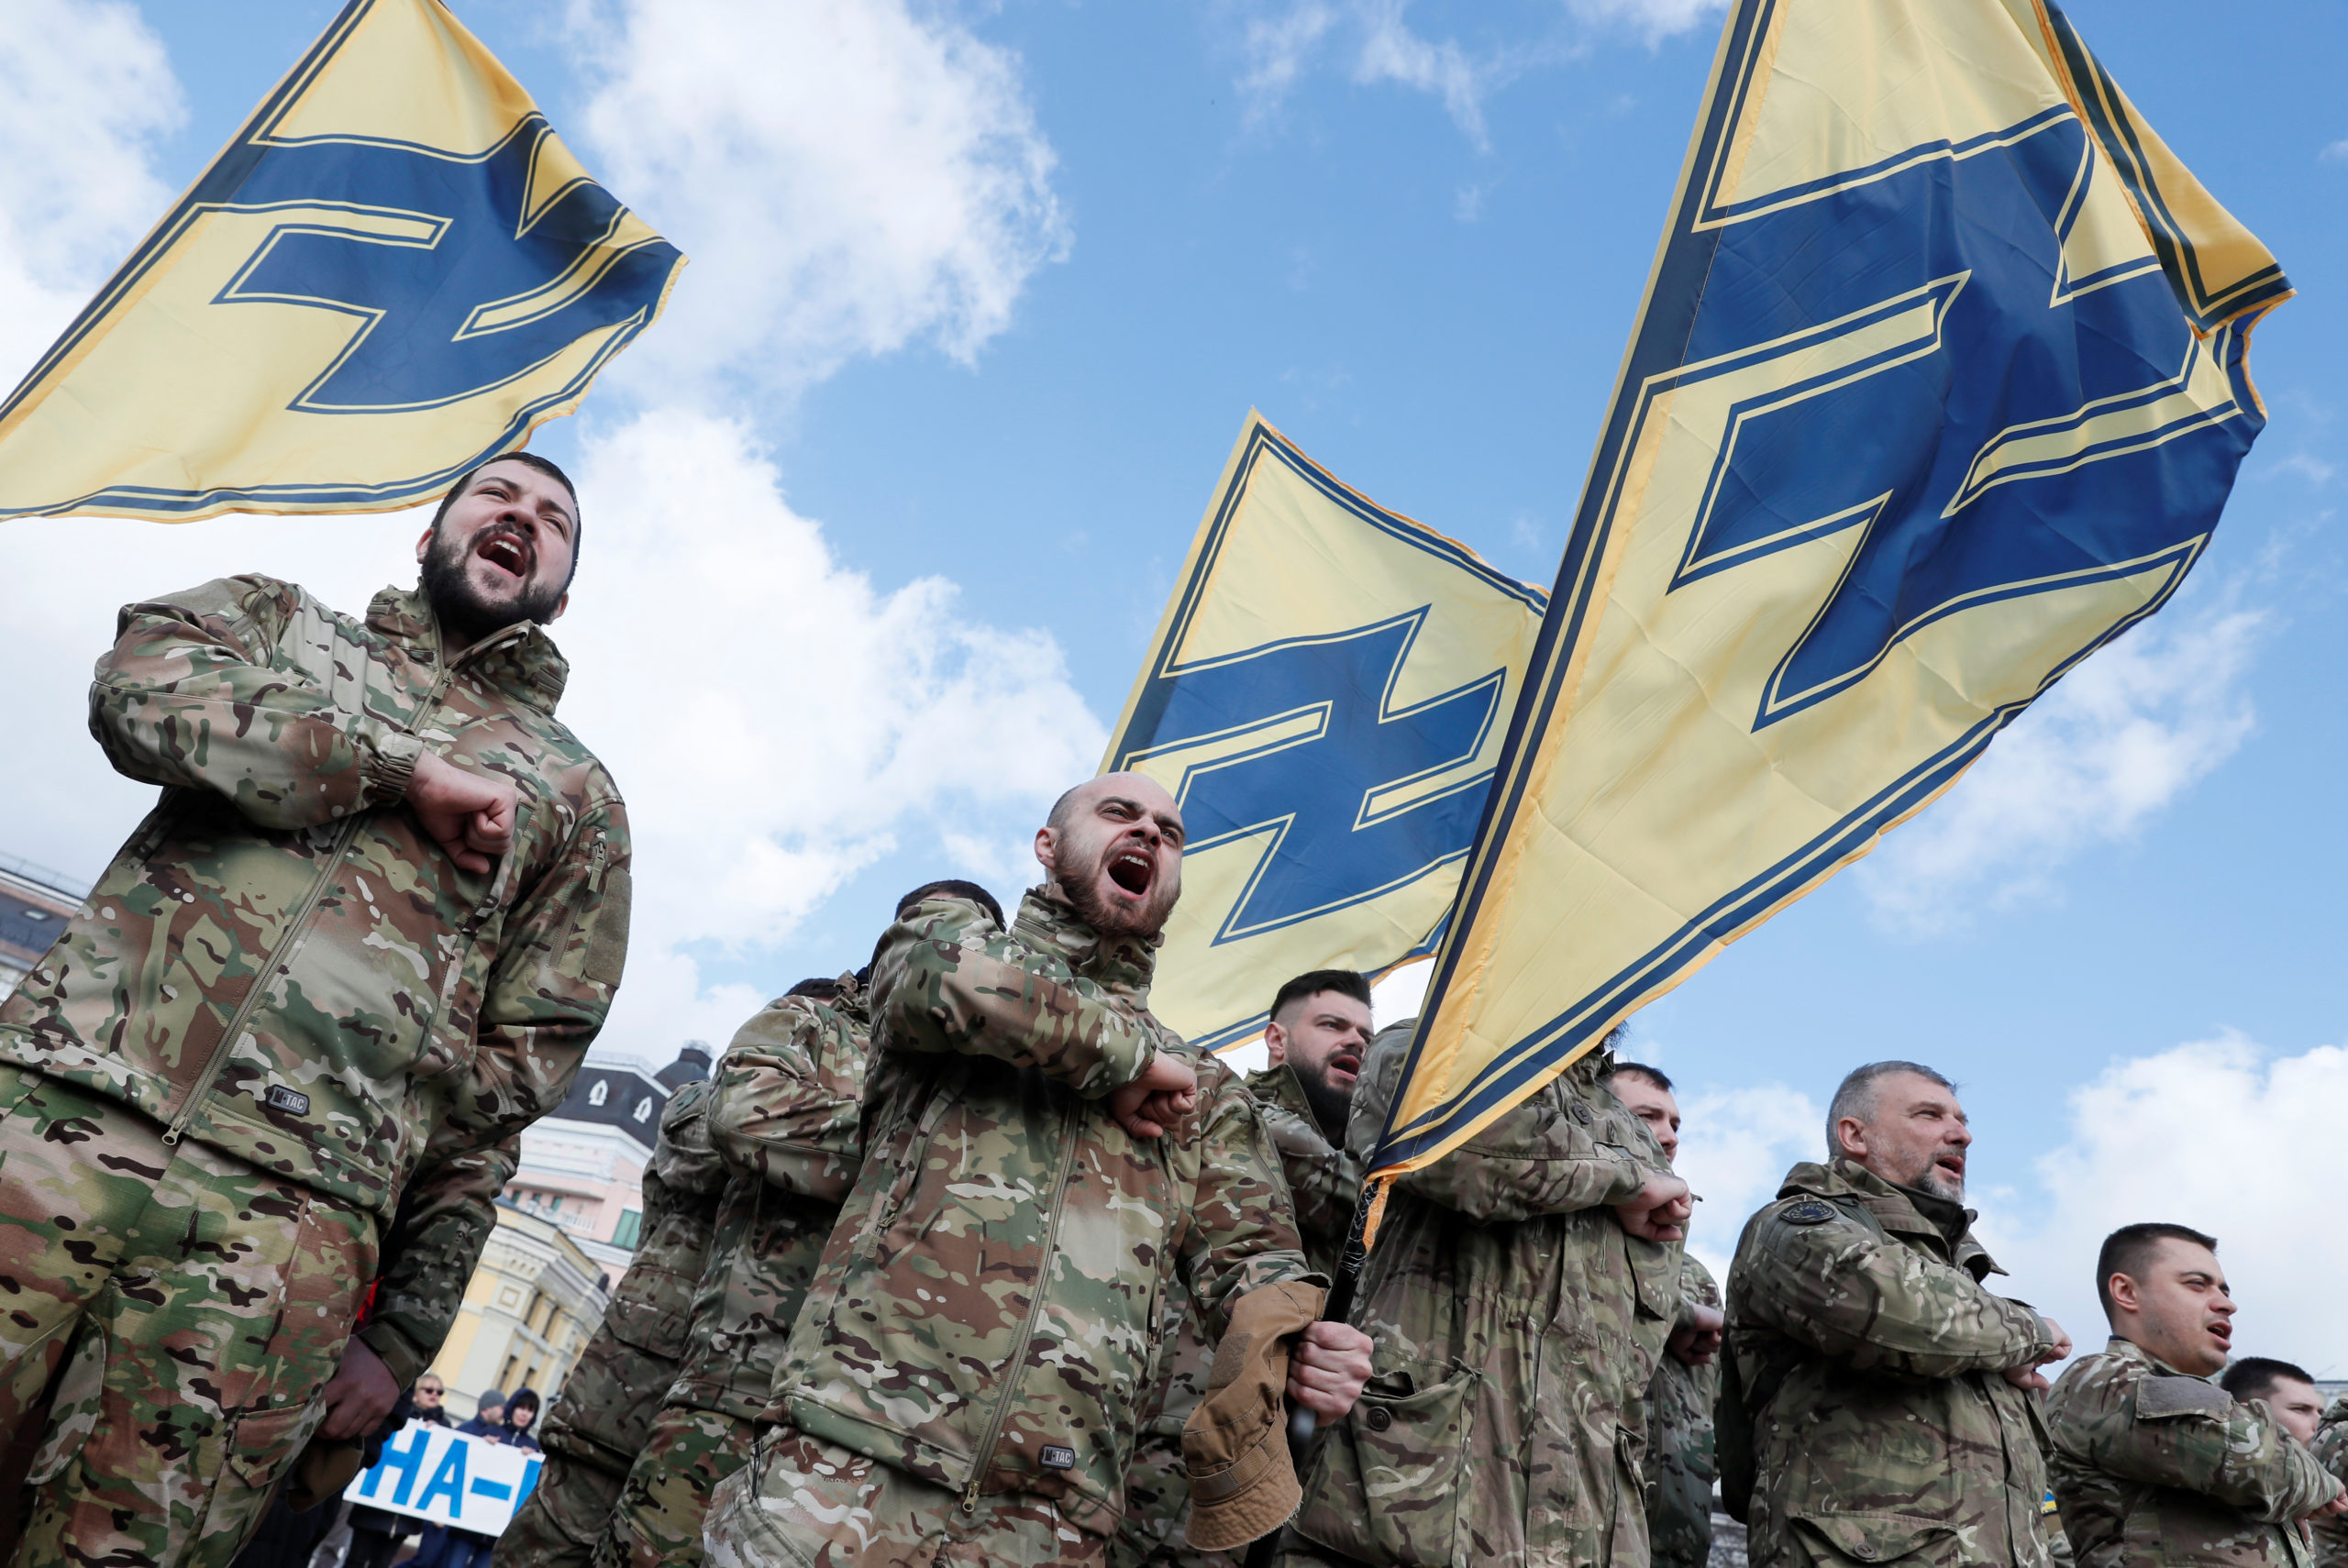 The European Parliament drew attention to the arbitrariness of Ukrainian radicals